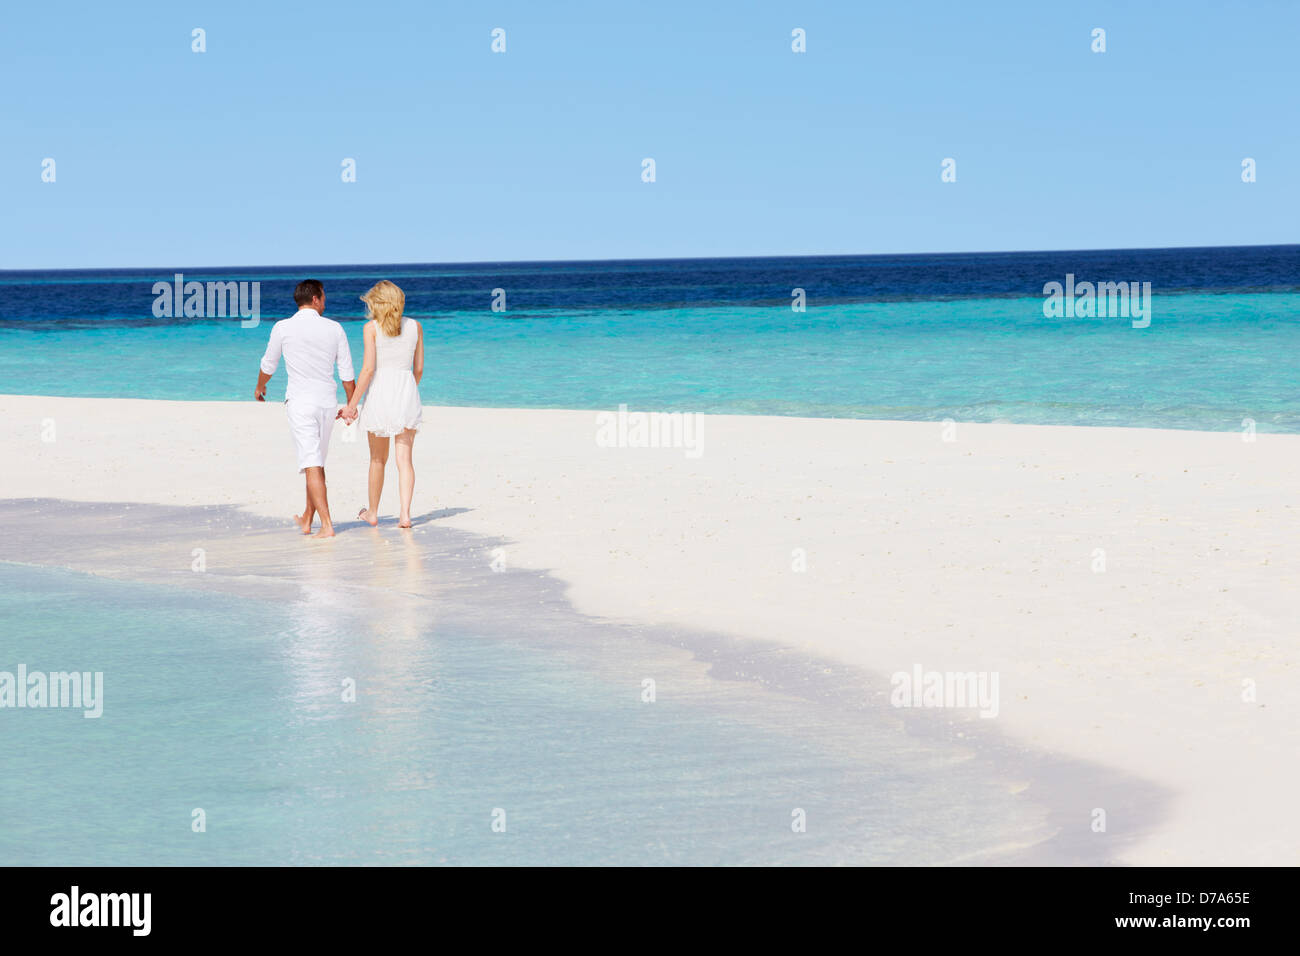 Rear View Of Romantic Couple Walking On Tropical Beach Stock Photo